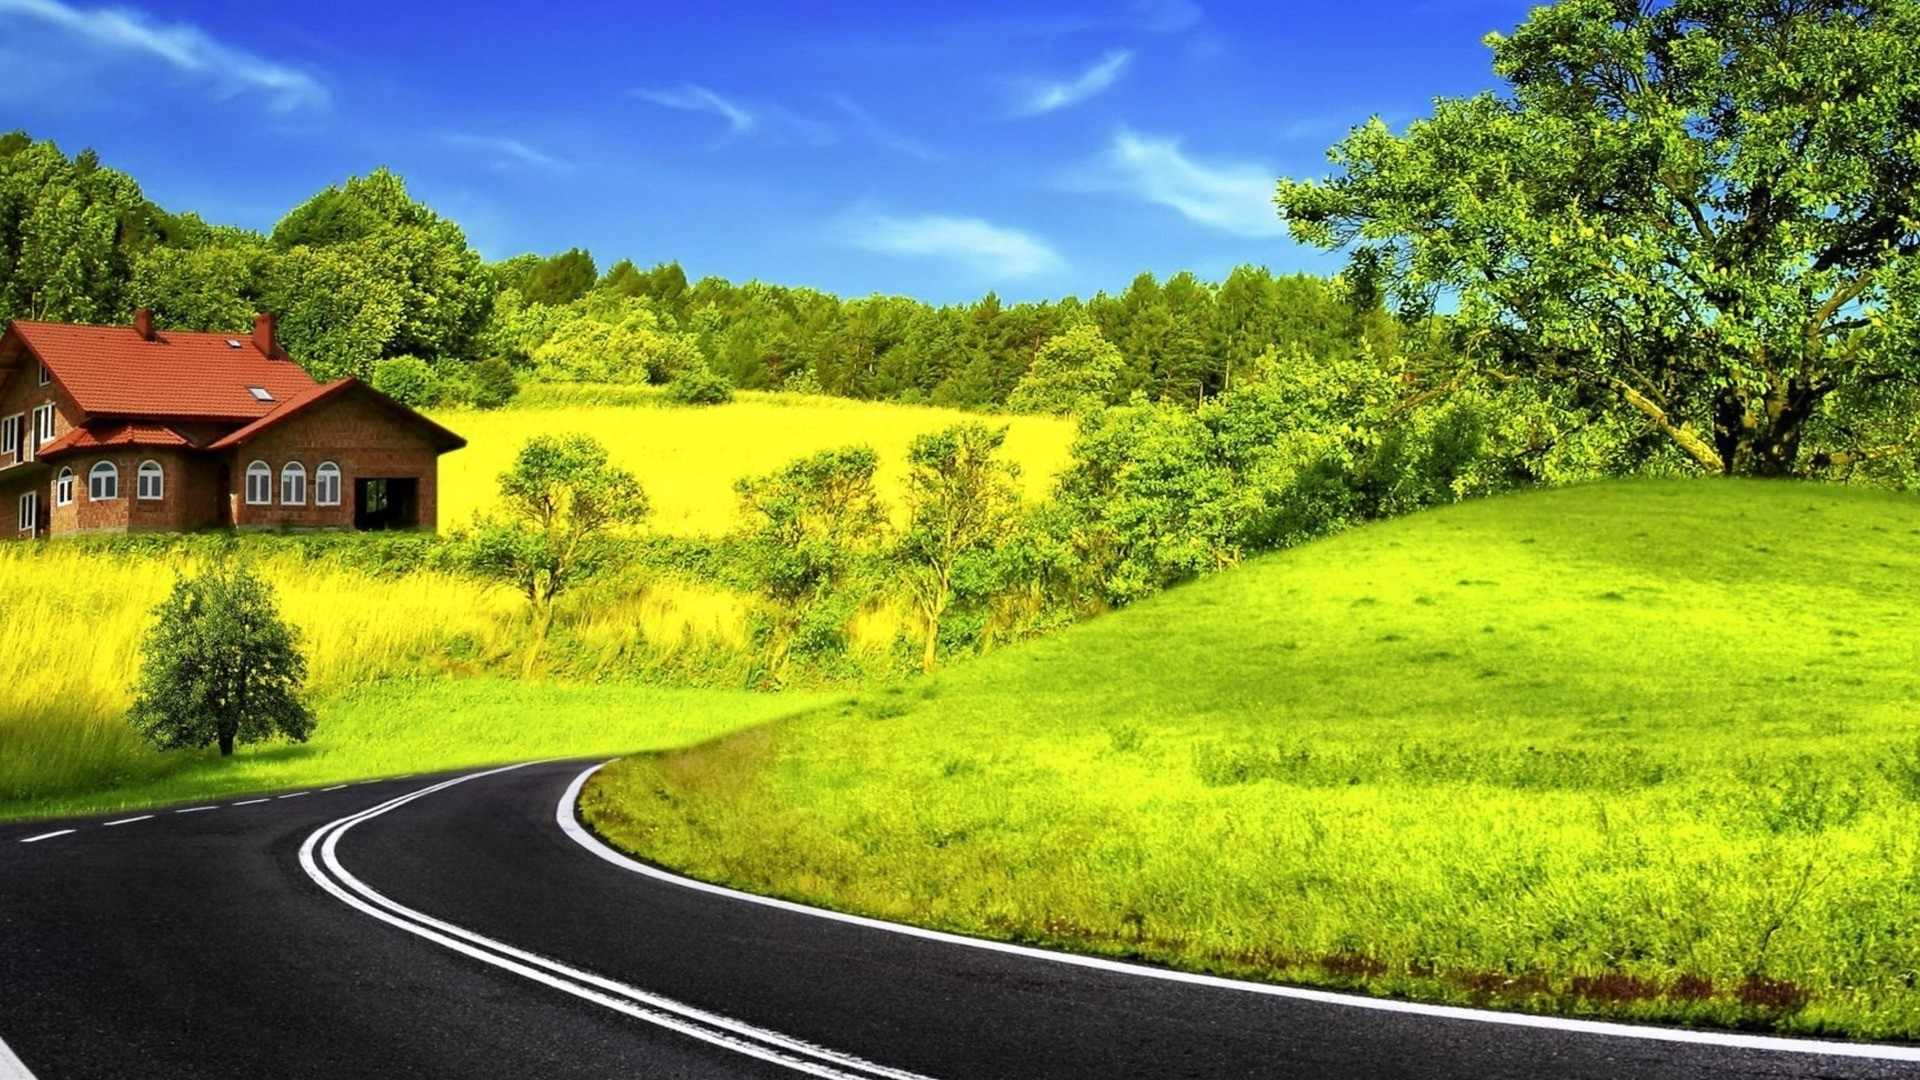 1920x1080 ... Background Full HD 1080p.  Wallpaper road, sky, marking, nature